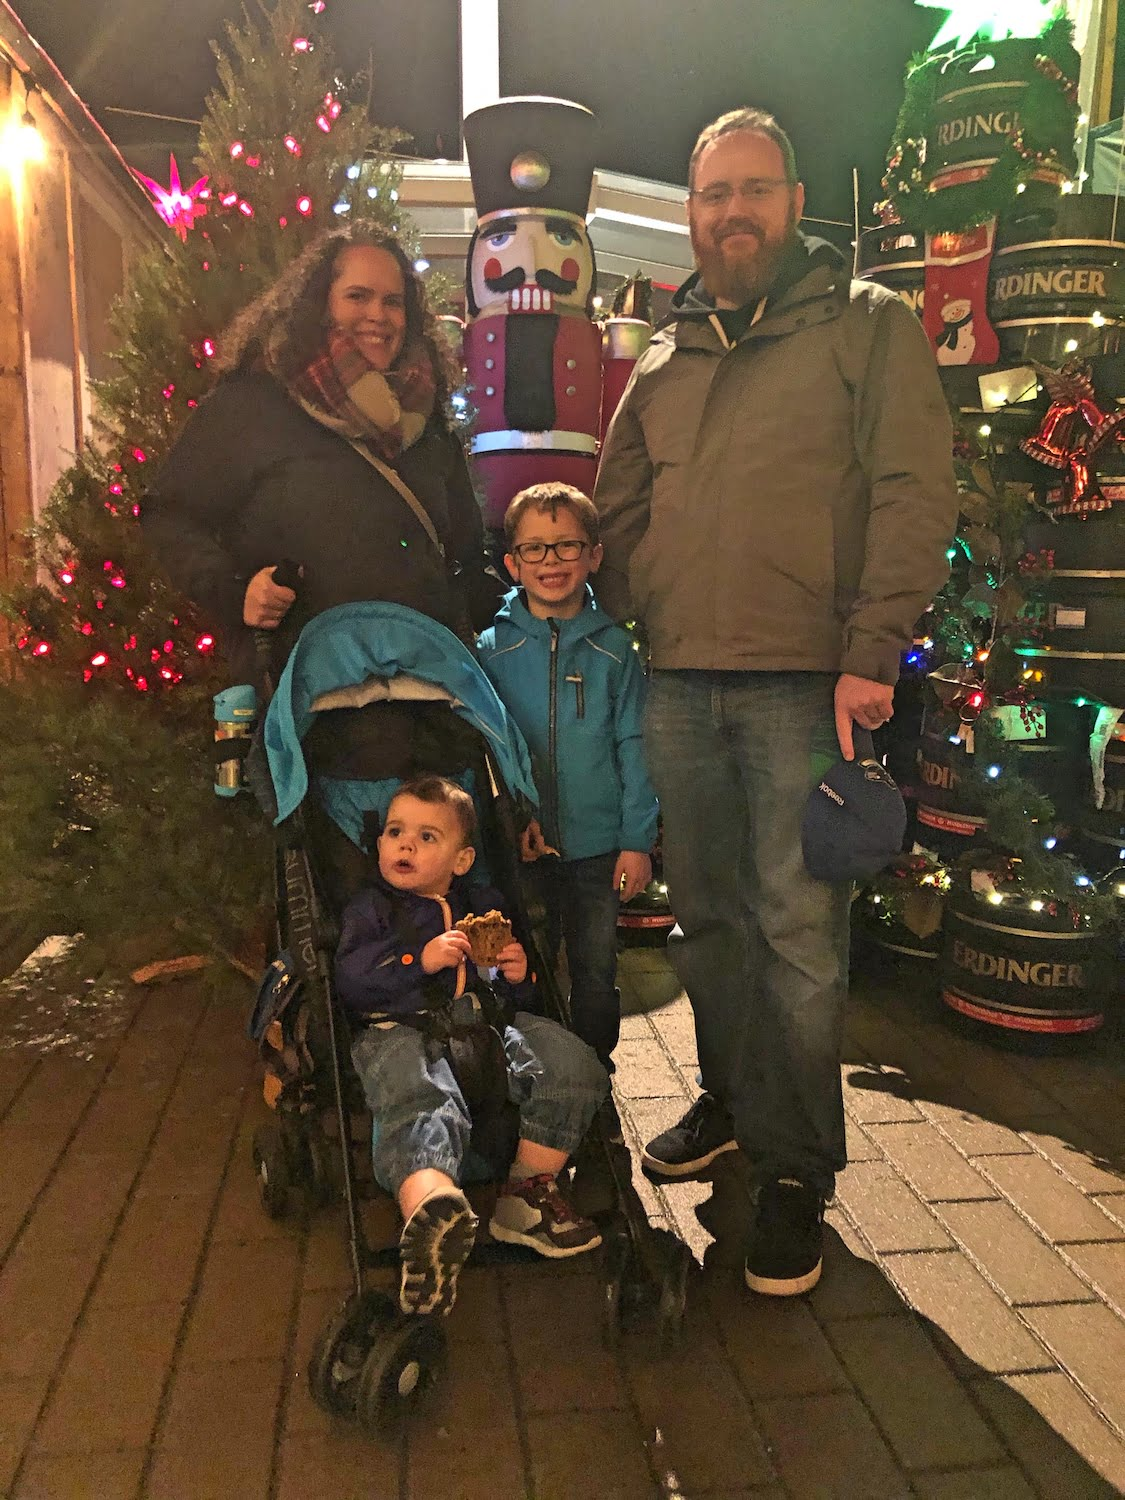 Family at Vancouver Christmas Market